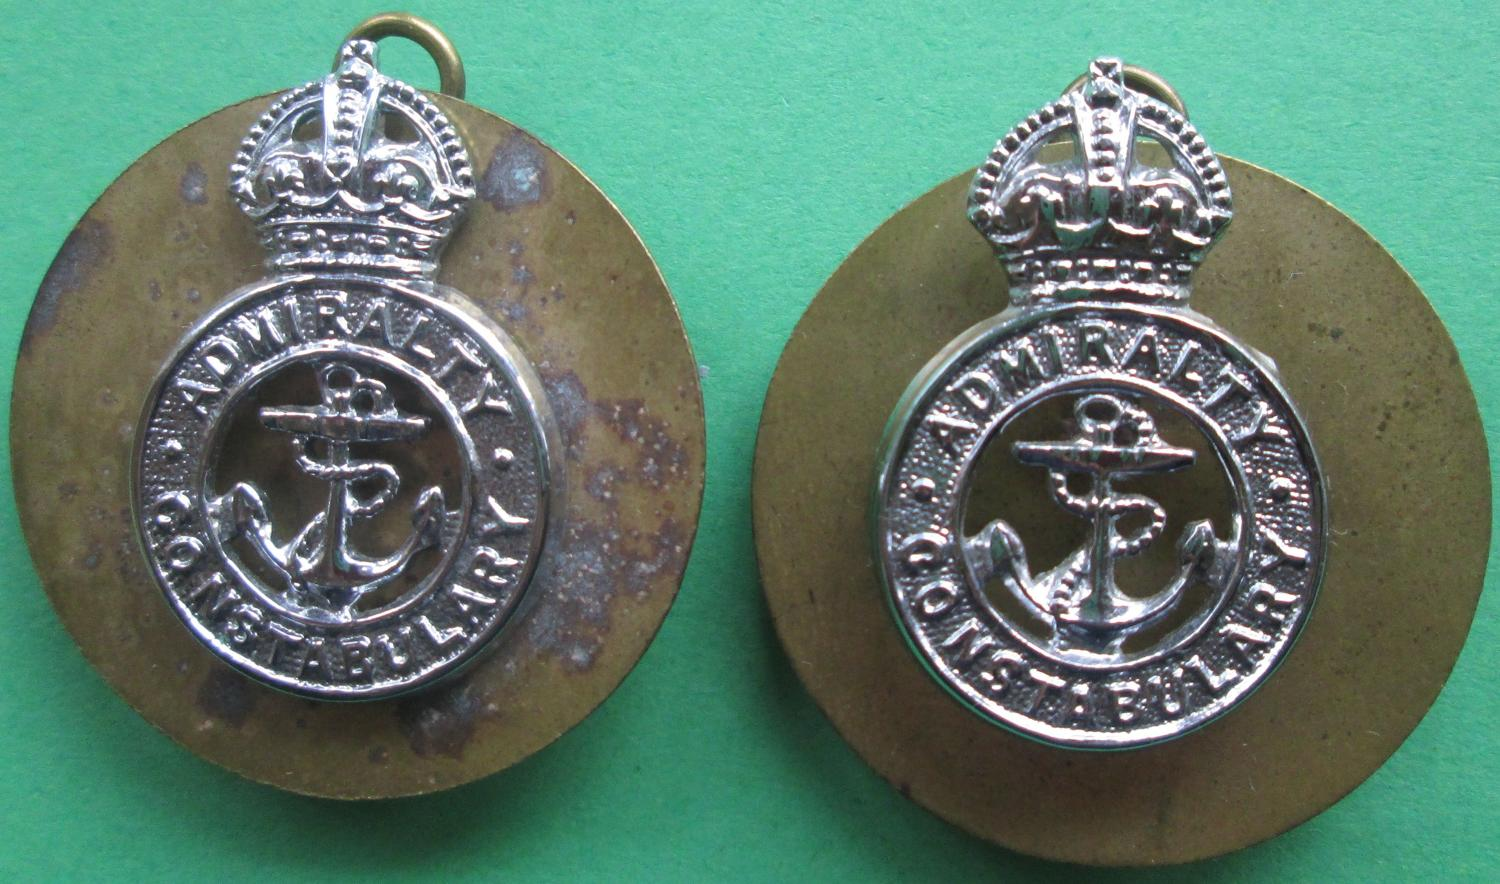 A PAIR OF KINGS CROWN PRE 1952 ADMIRALTY CONSTABULARY COLLAR DOGS